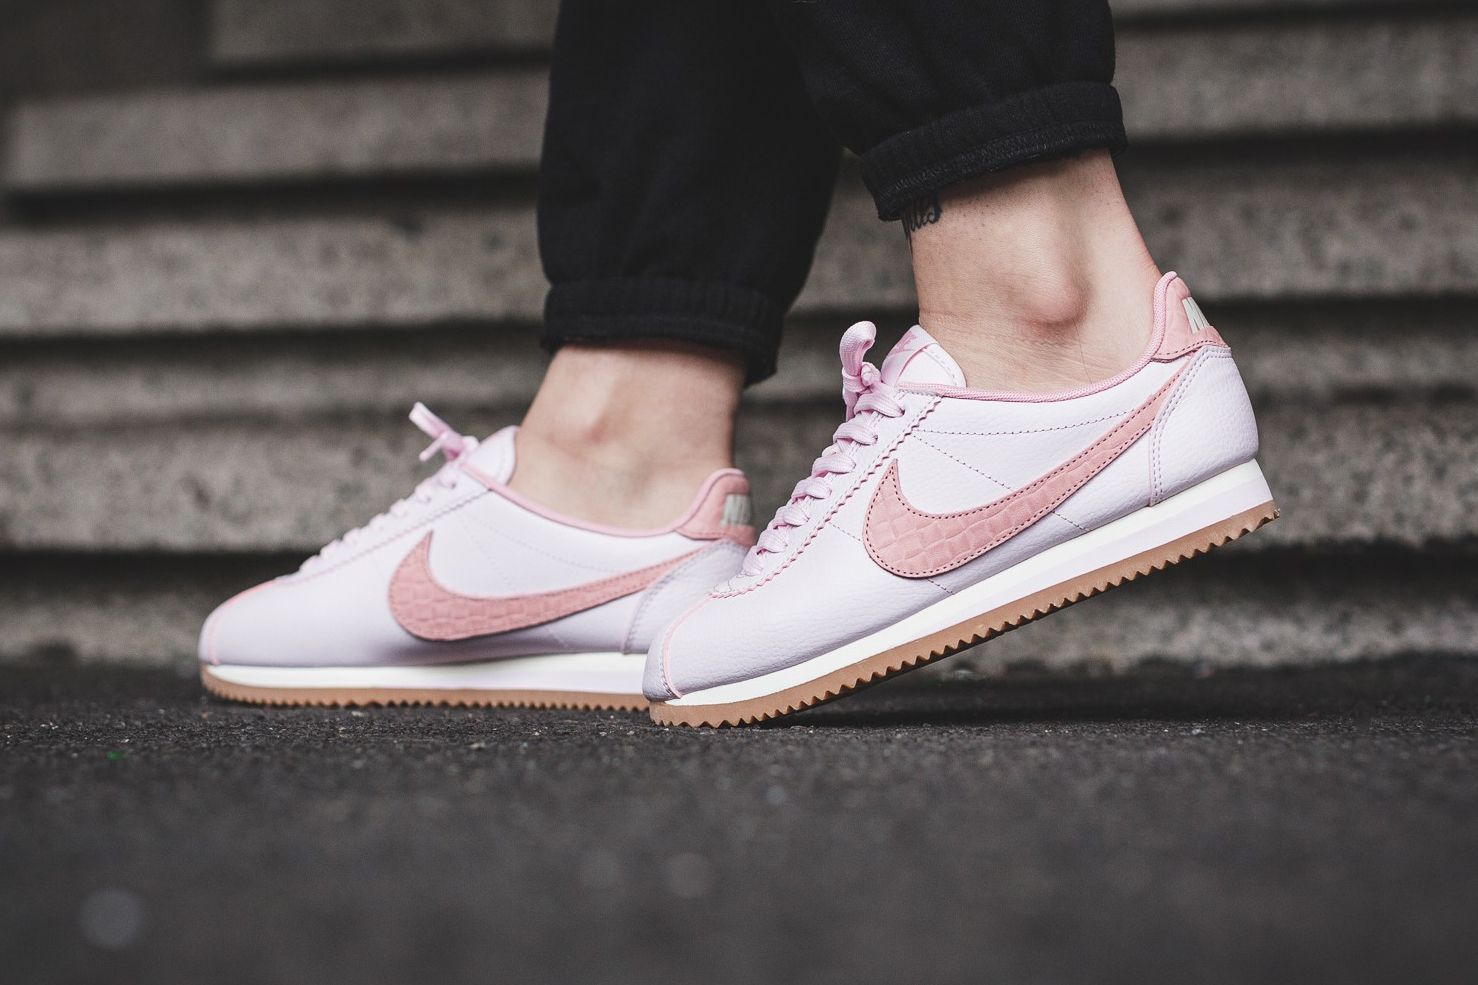 d8f0dcd5738d This Nike Classic Cortez Is Pink Like a Ballet Slipper